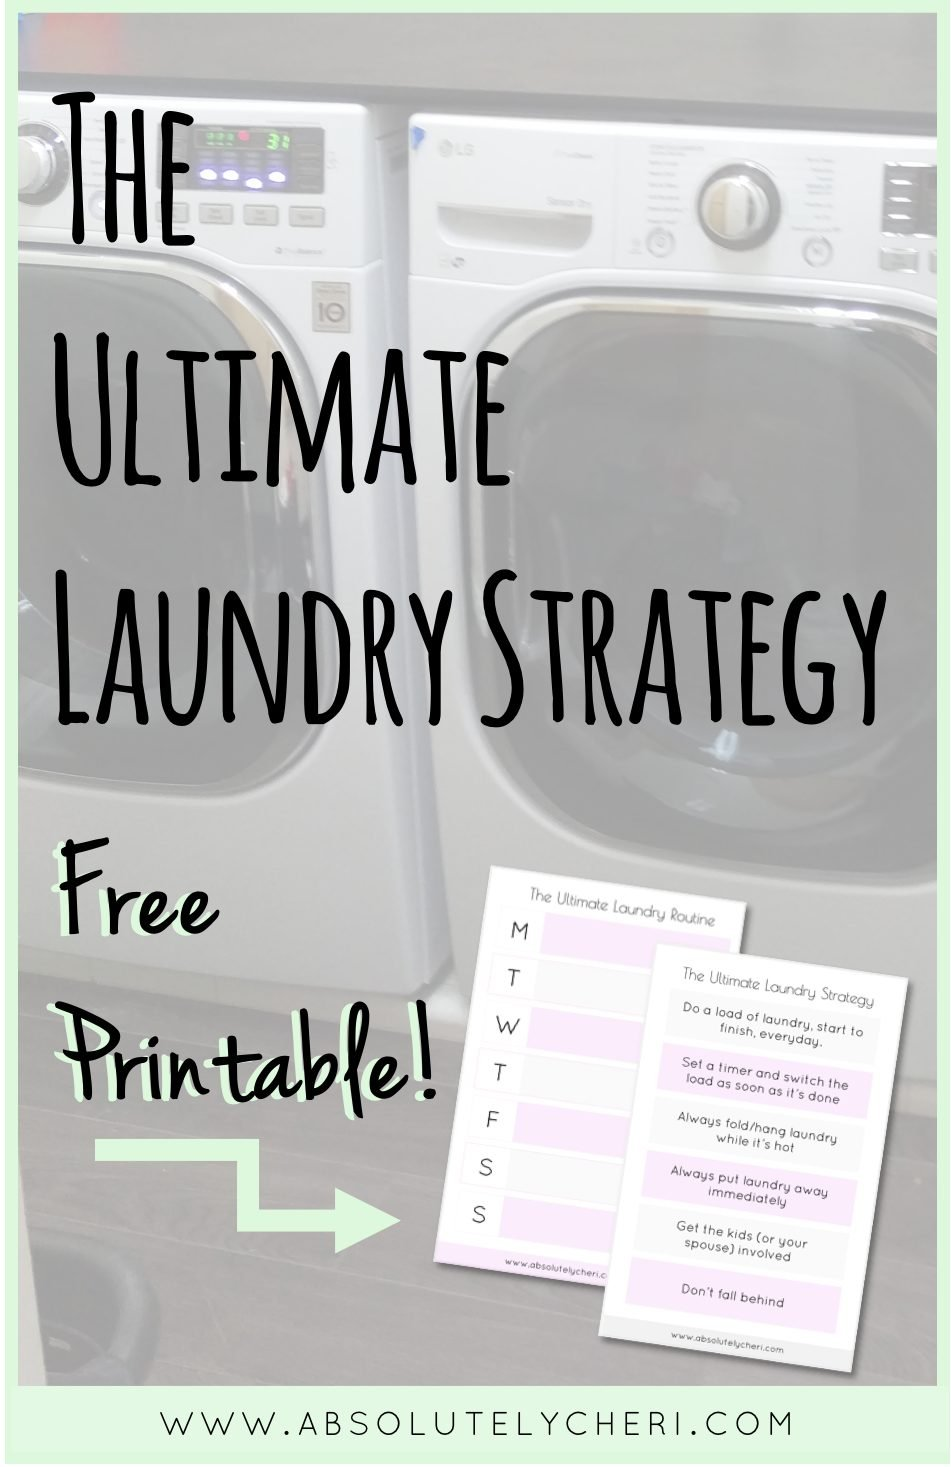 It really is a viscous cycle. I used to feel like I was always staring at a mountain of dirty laundry that needed to be washed or a mountain of clean laundry that needed to be folded. I finally discovered a strategy that helps me keep the laundry done efficiently.